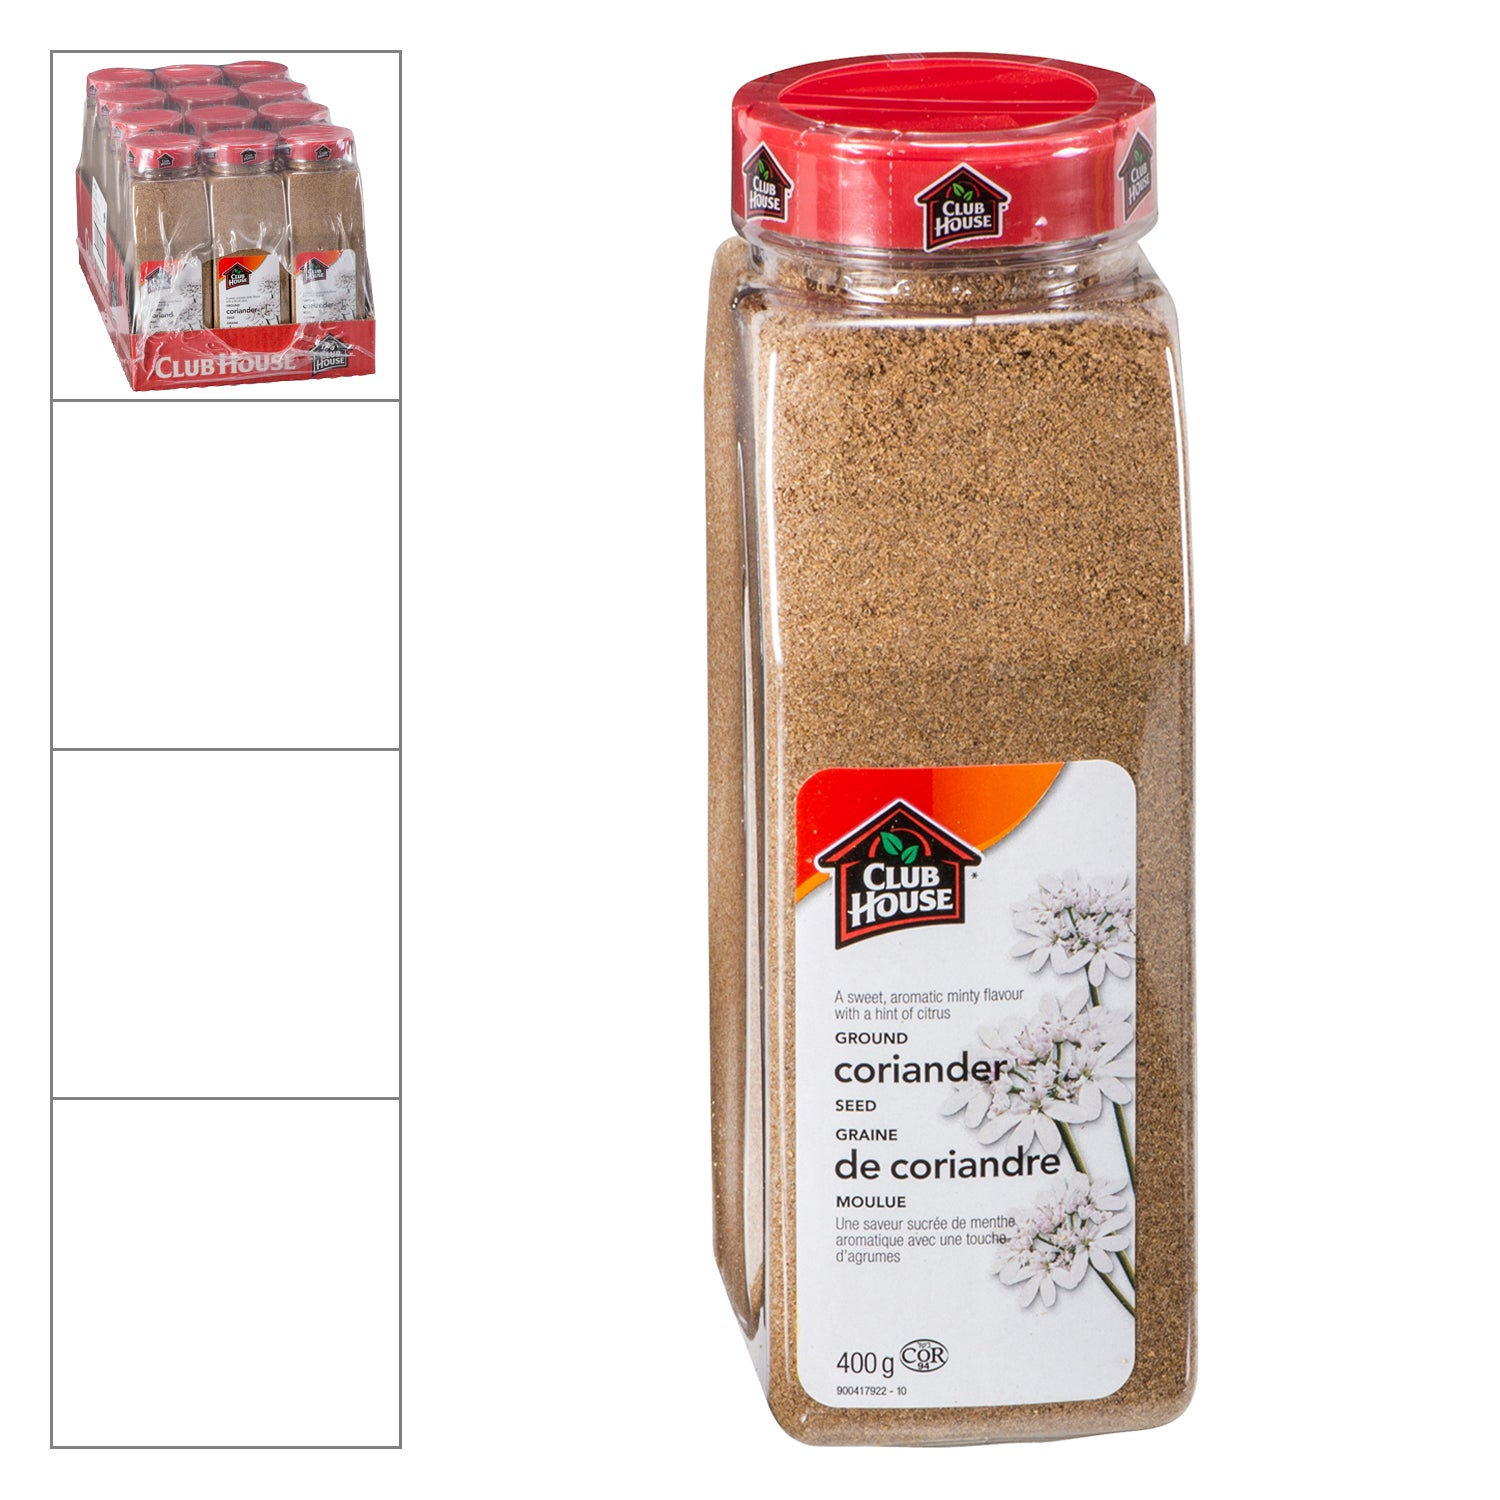 Club House Ground Coriander 400 g - 1 Pack [$9.19/each]